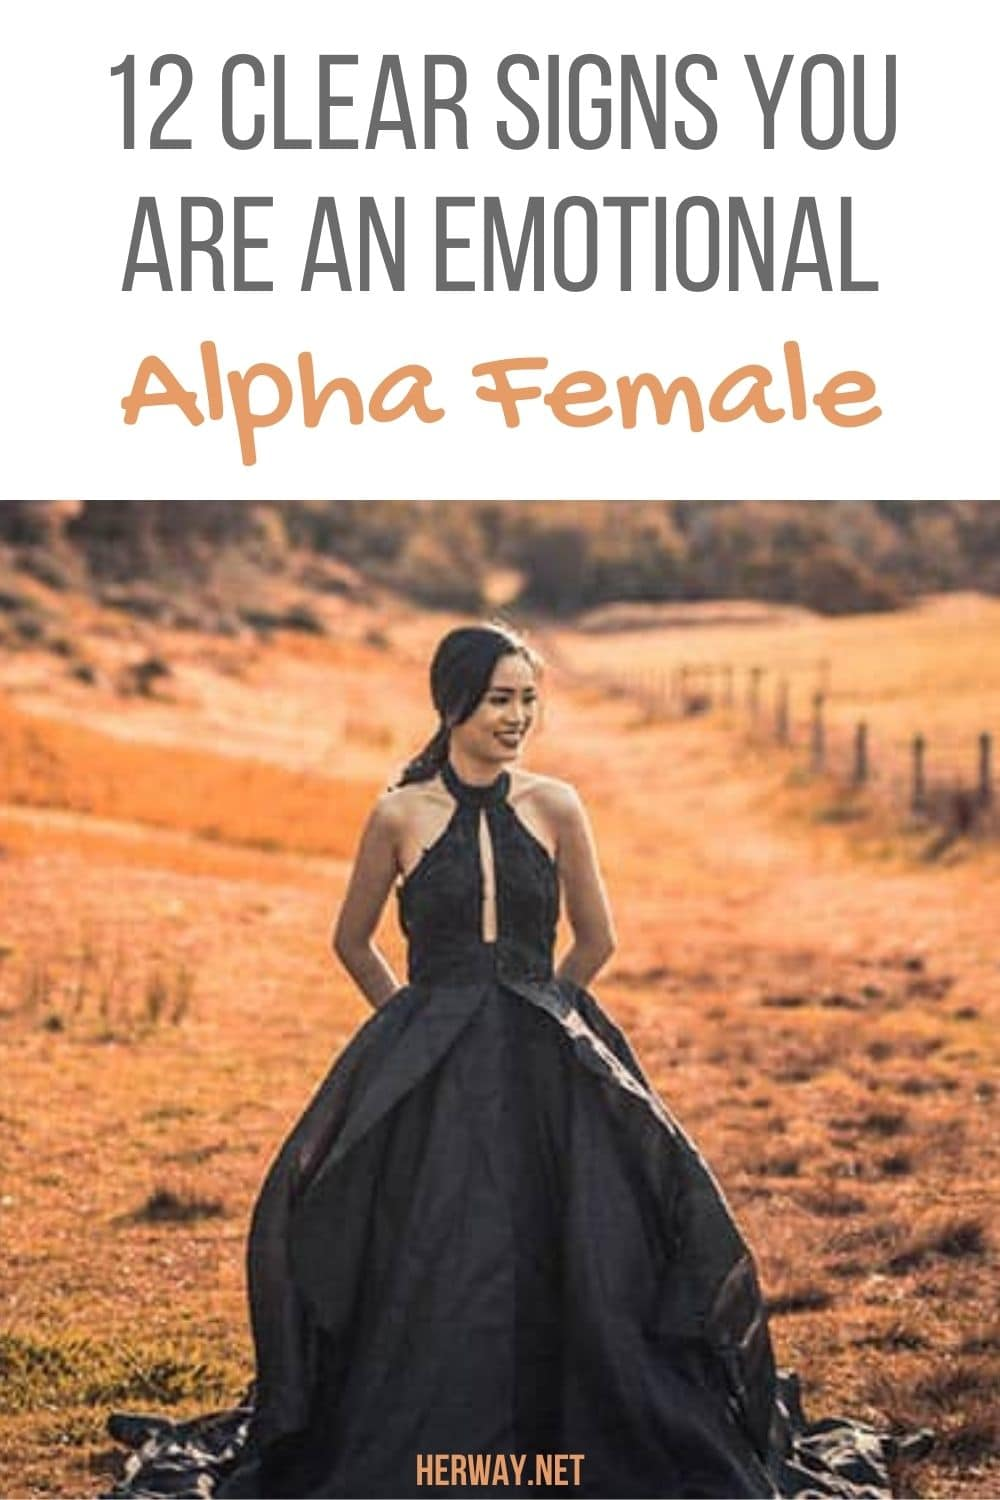 12 Clear Signs You Are An Emotional Alpha Female